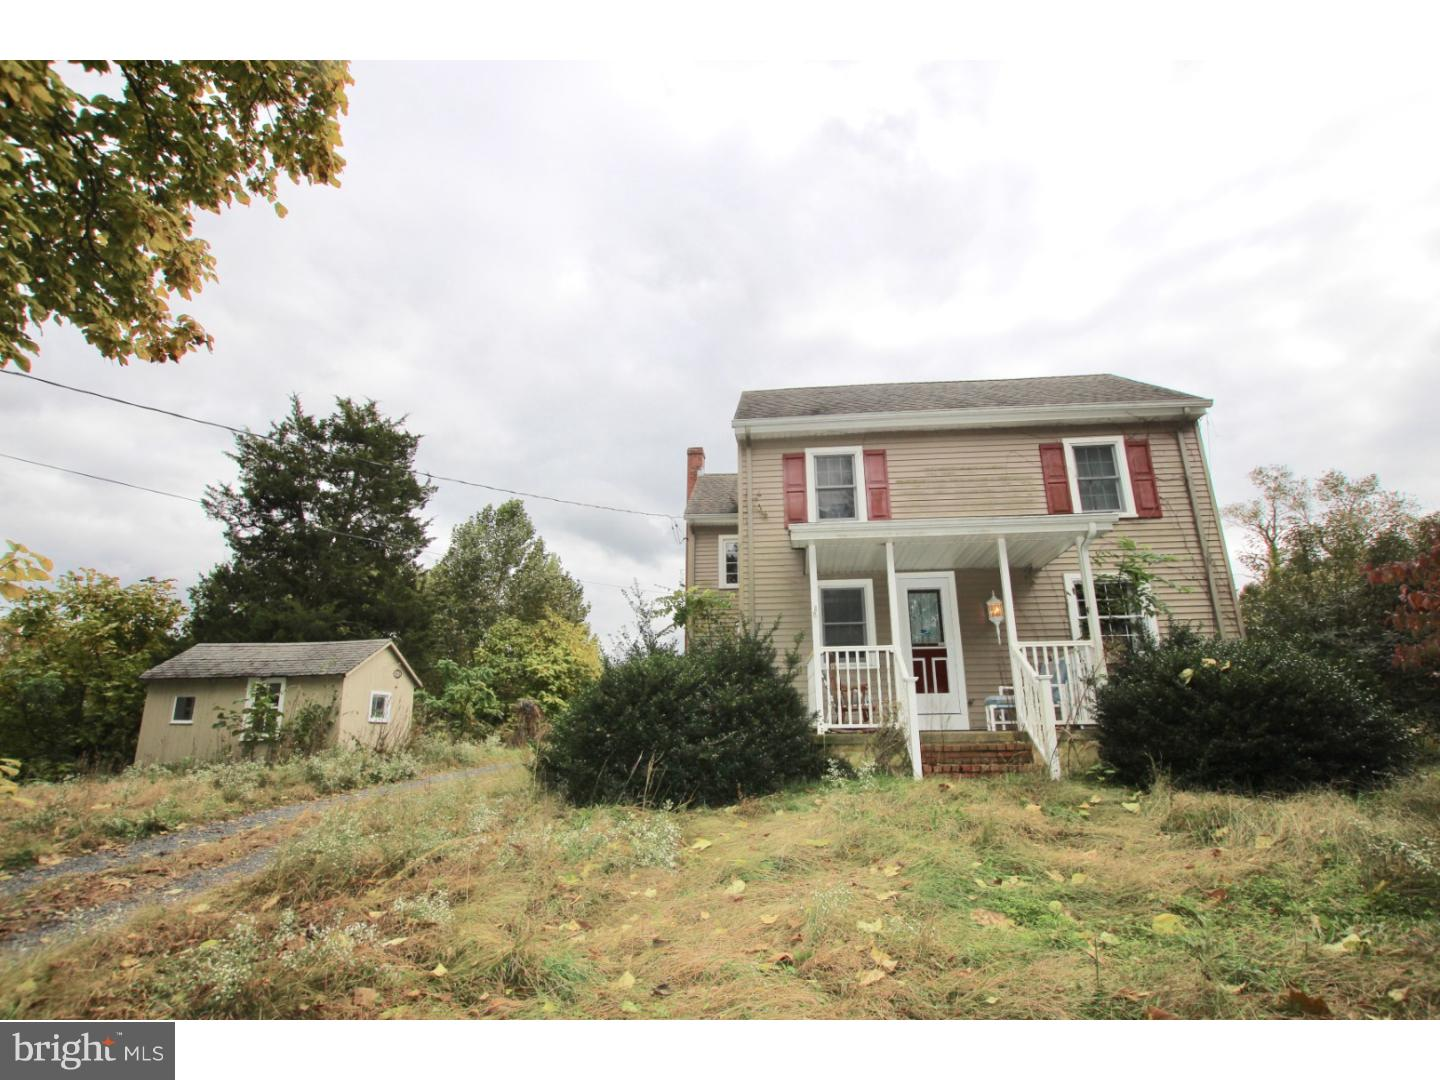 Single Family Home for Sale at 84 LEBANON Road Bridgeton, New Jersey 08302 United States